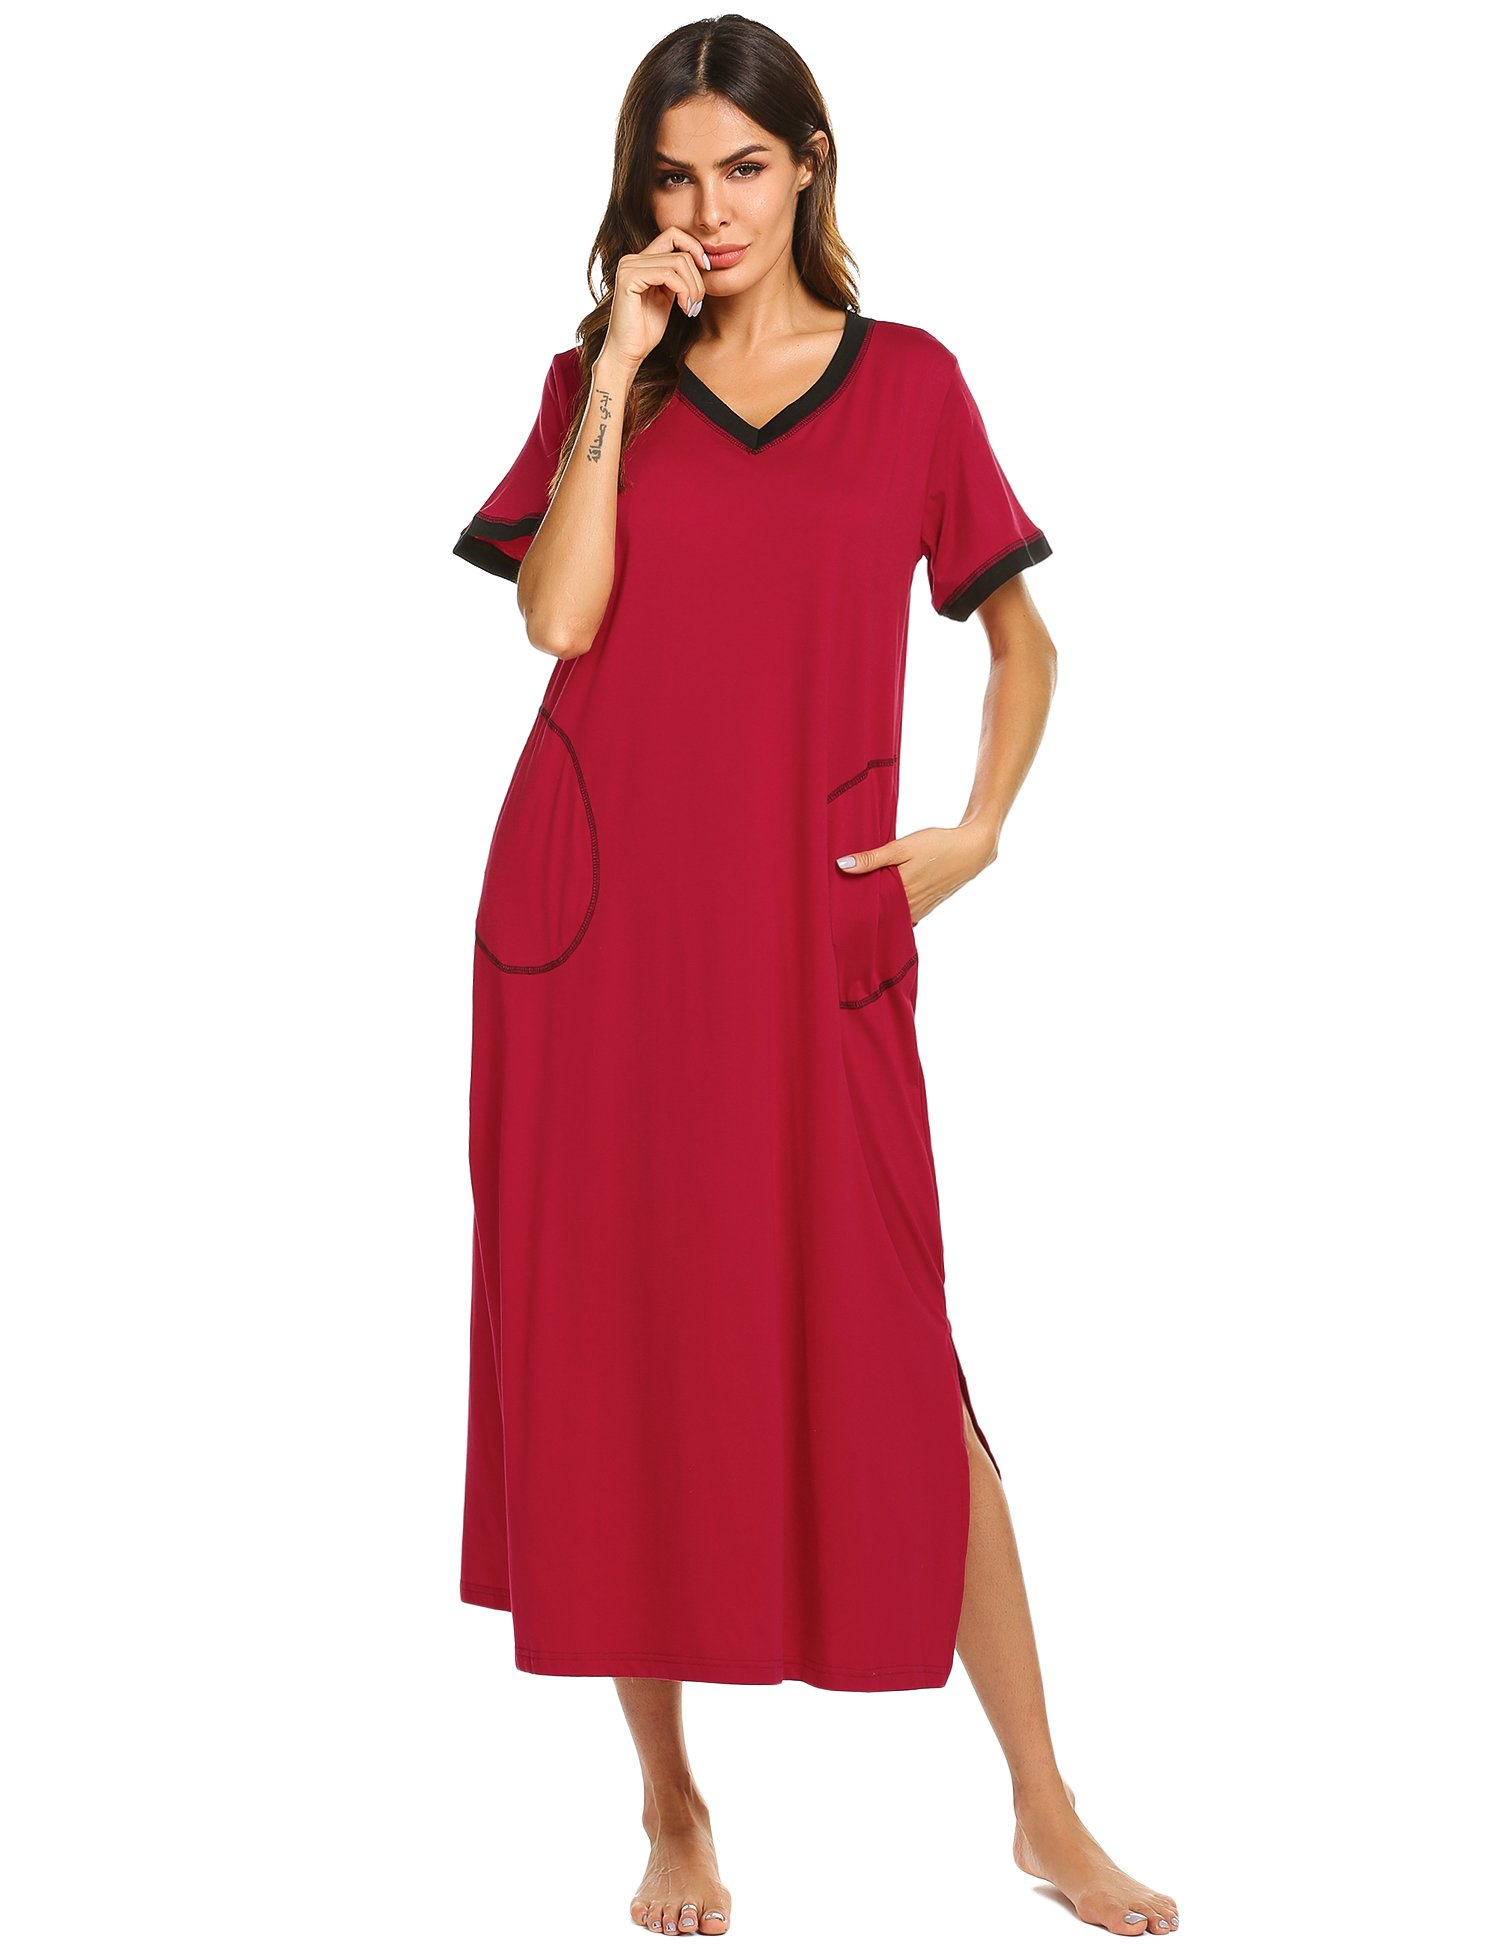 841c5a210dbe8 Ekouaer Loungewear Long Nightgown Women's Ultra-Soft Nightshirt Full Length  Sleepwear with Pocket product image